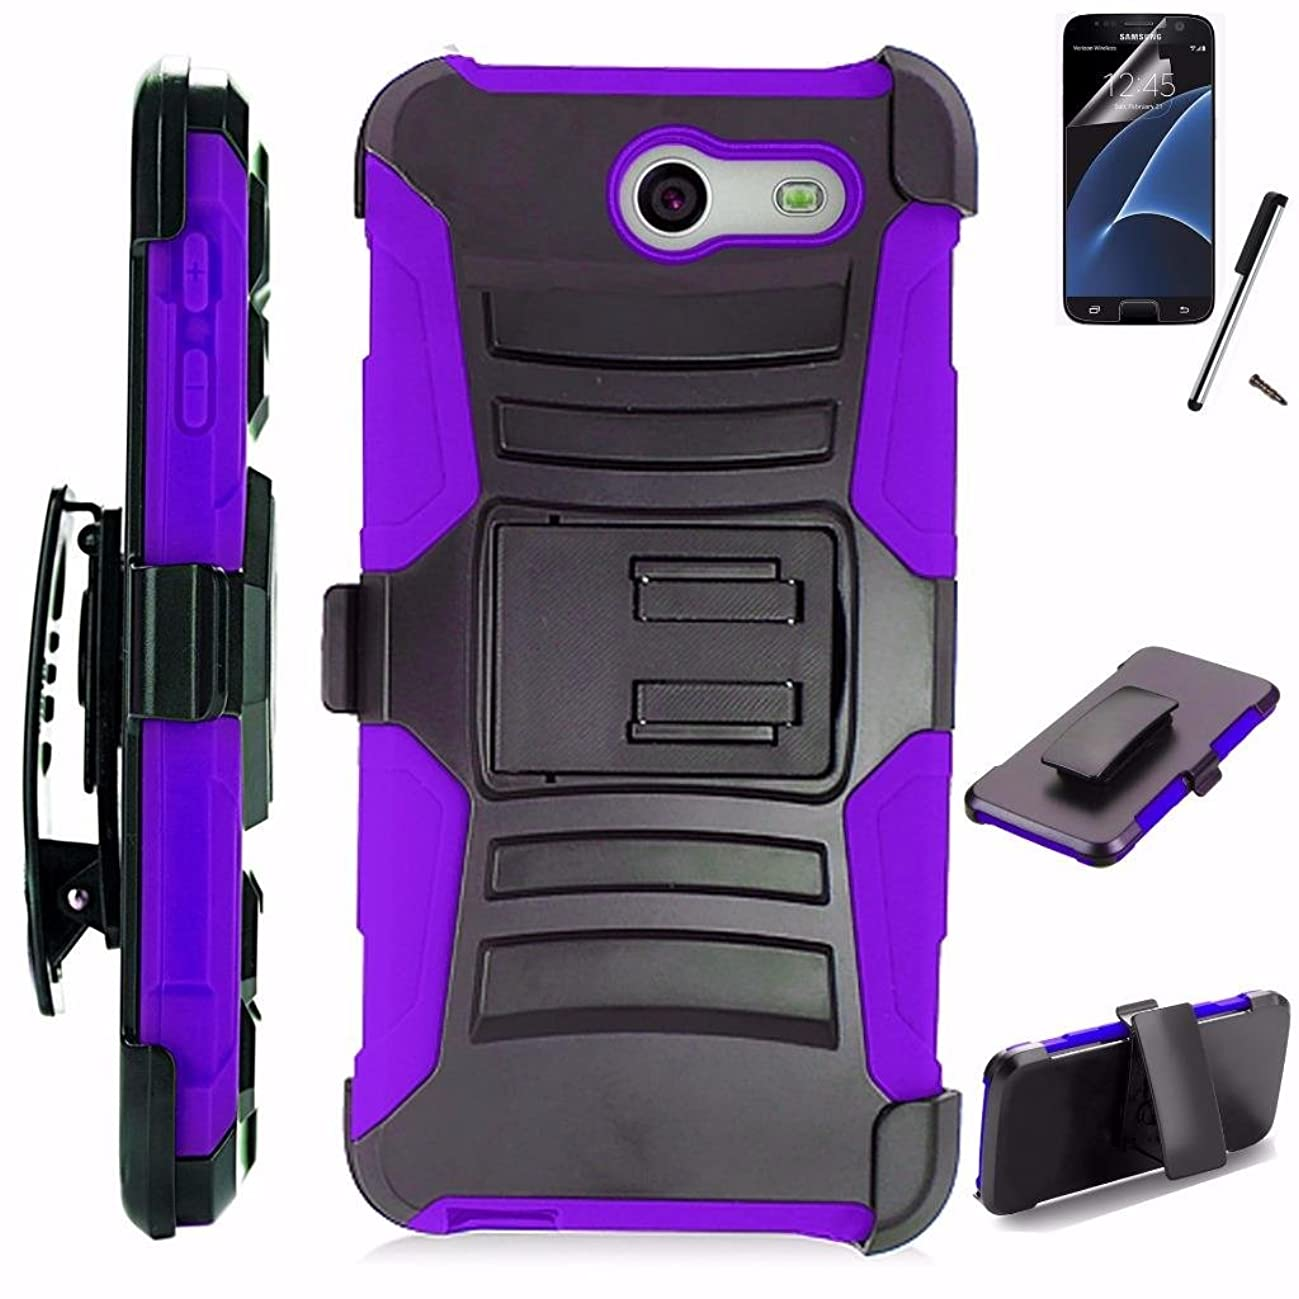 For Samsung Galaxy Halo Case / Galaxy J7 Perx Case / Galaxy J7 Prime Case / Galaxy J7 Sky Pro Case / Galaxy J7V Case Armor Hybrid Silicone Cover Stand w/ Holster Combo Pack (Black/Purple)